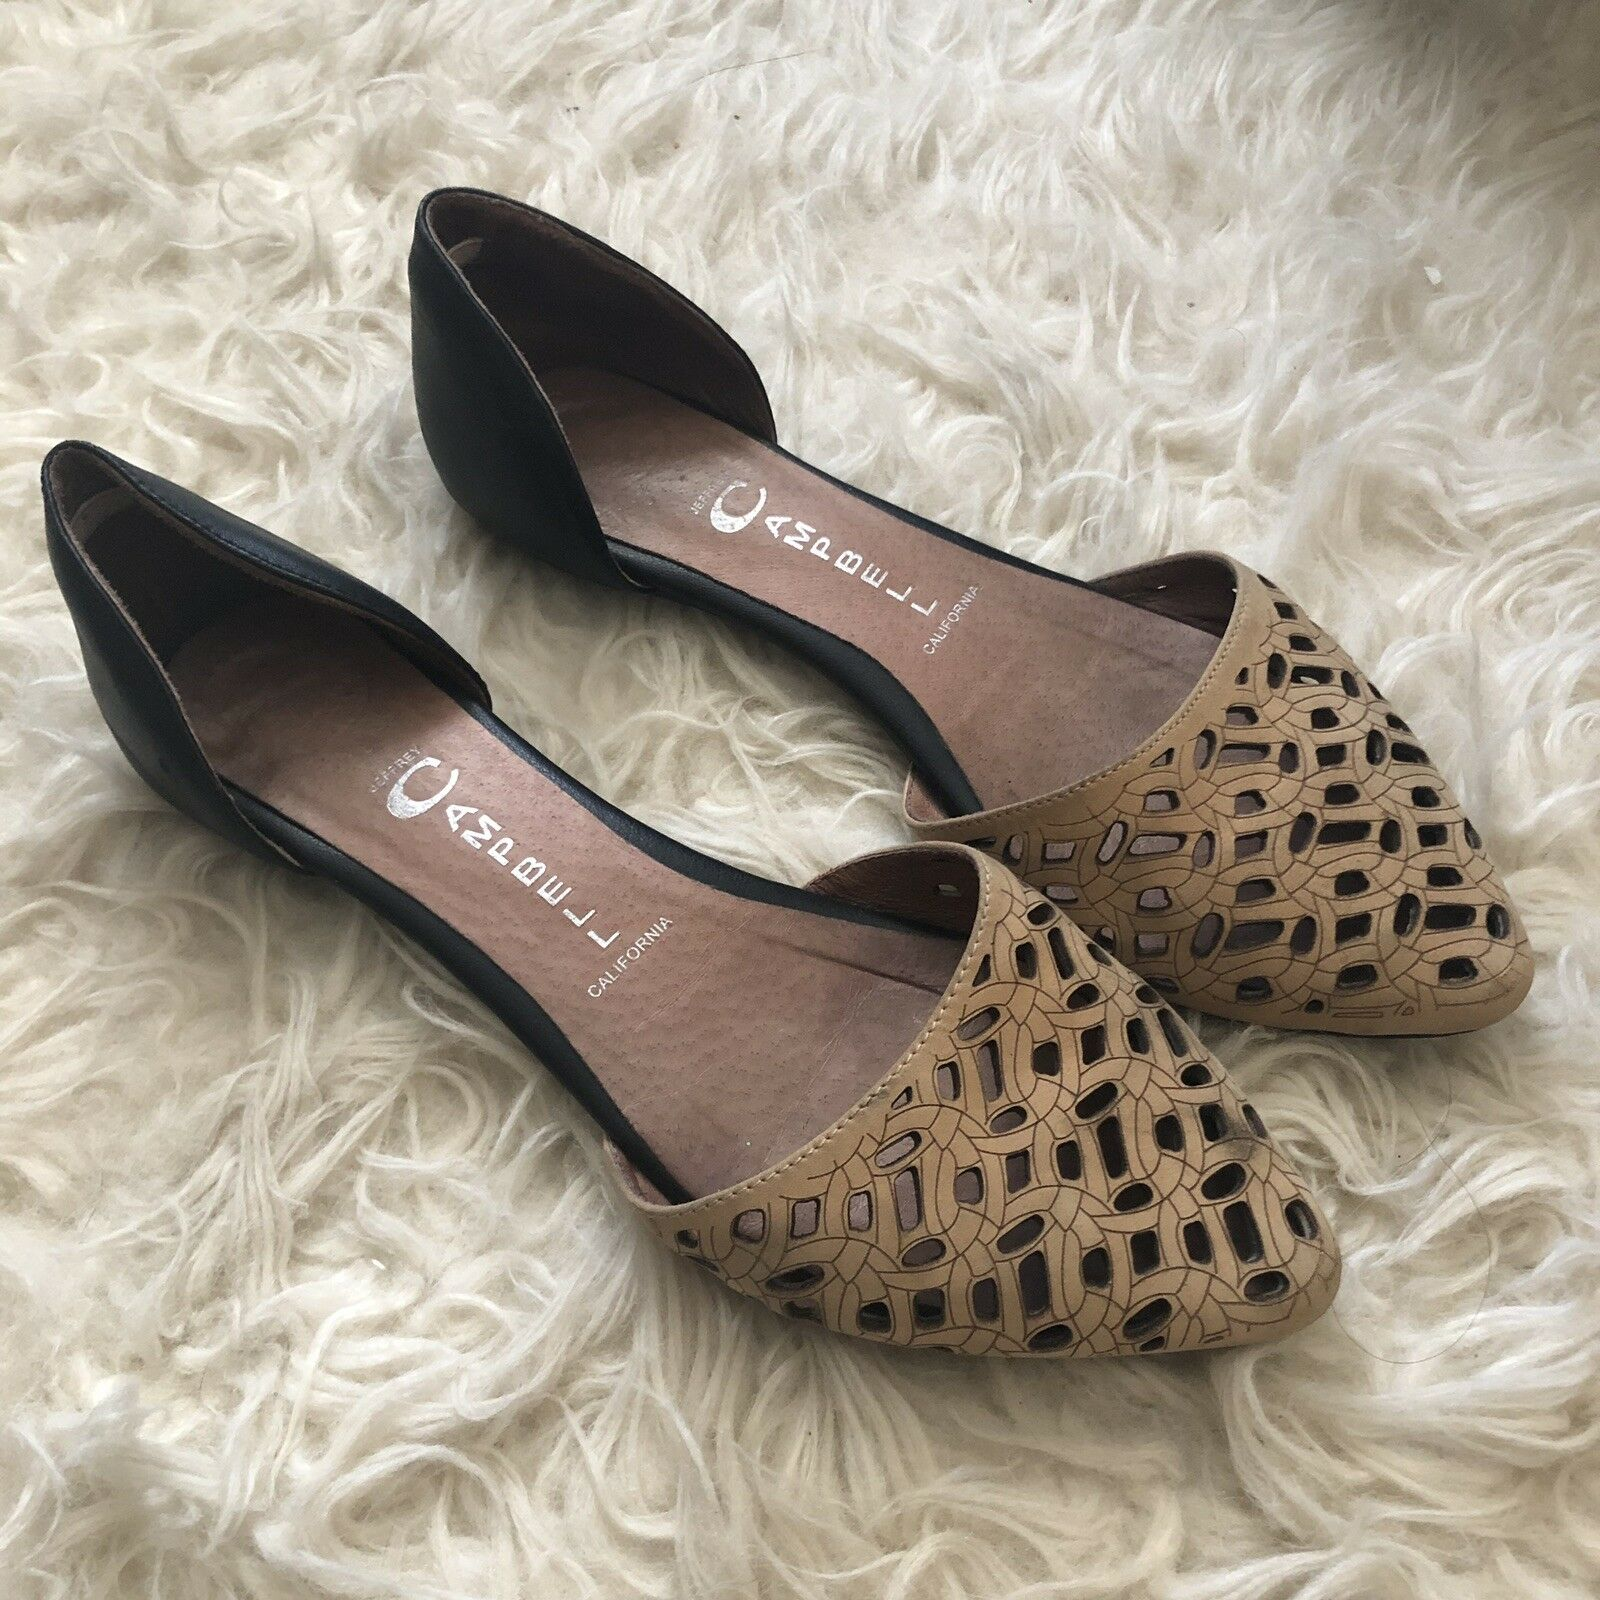 WOMENS Jeffrey Campbell Black and Tan Laser Cut D'Orsay Flats SIZE 7.5